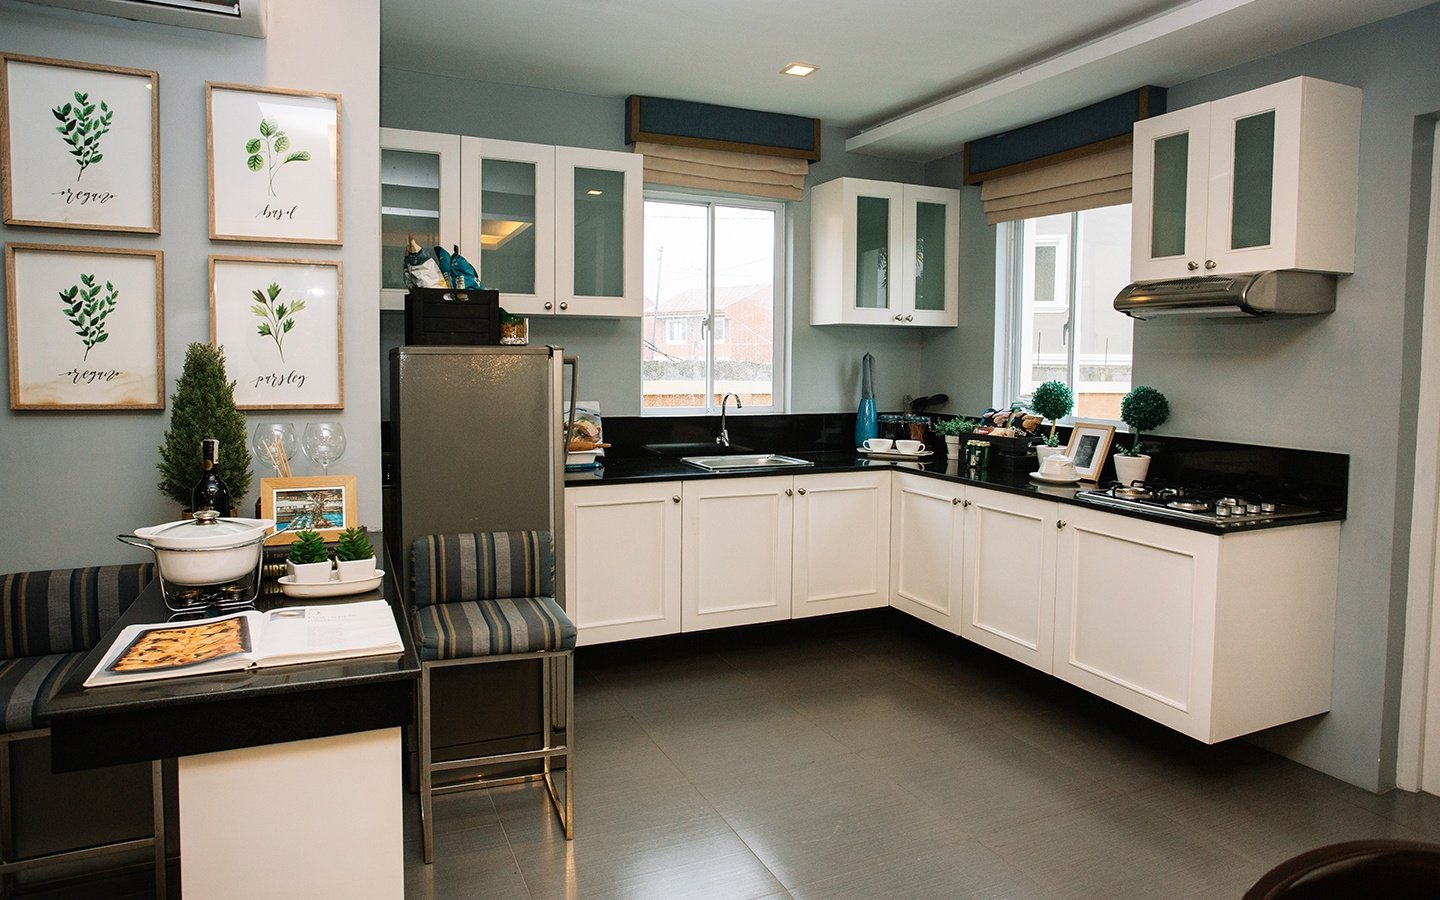 Ella home kitchen with bar area